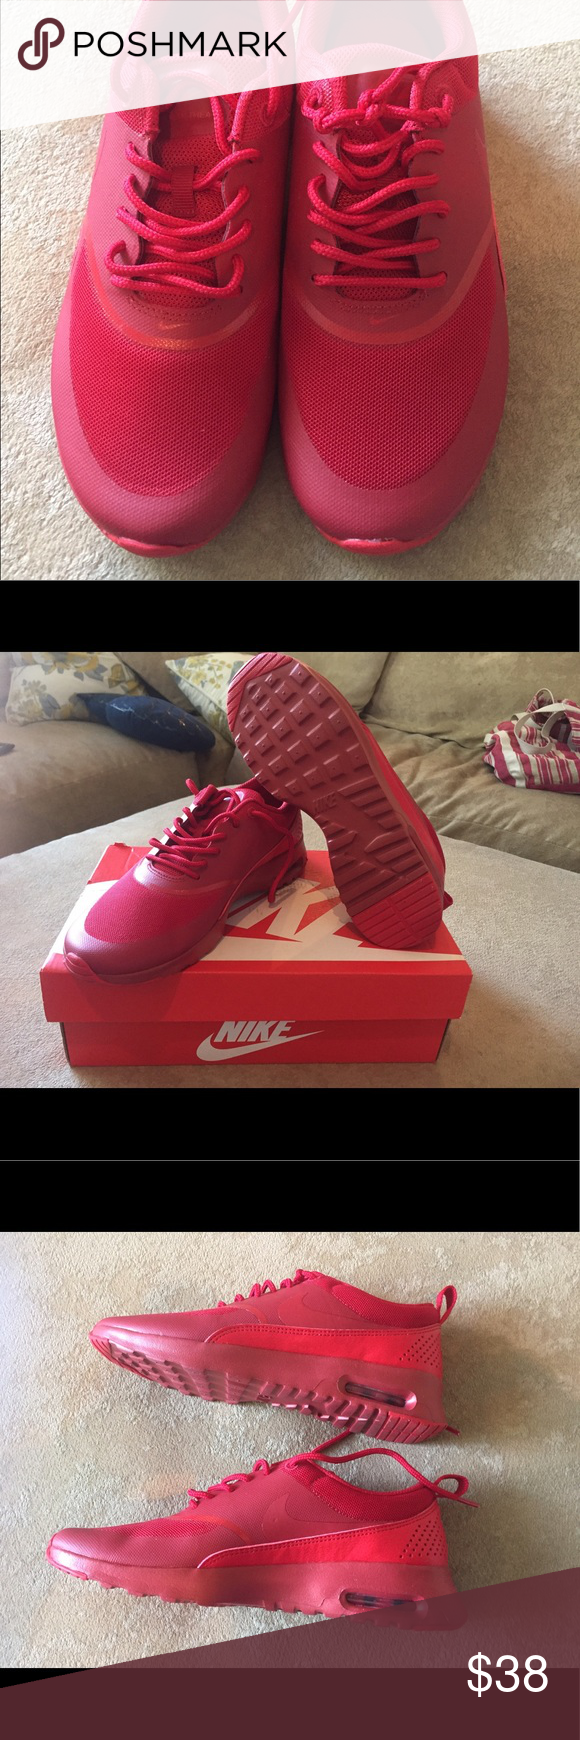 Women's Red Nike NWOT, I am not sure the style. Nike Shoes Athletic Shoes